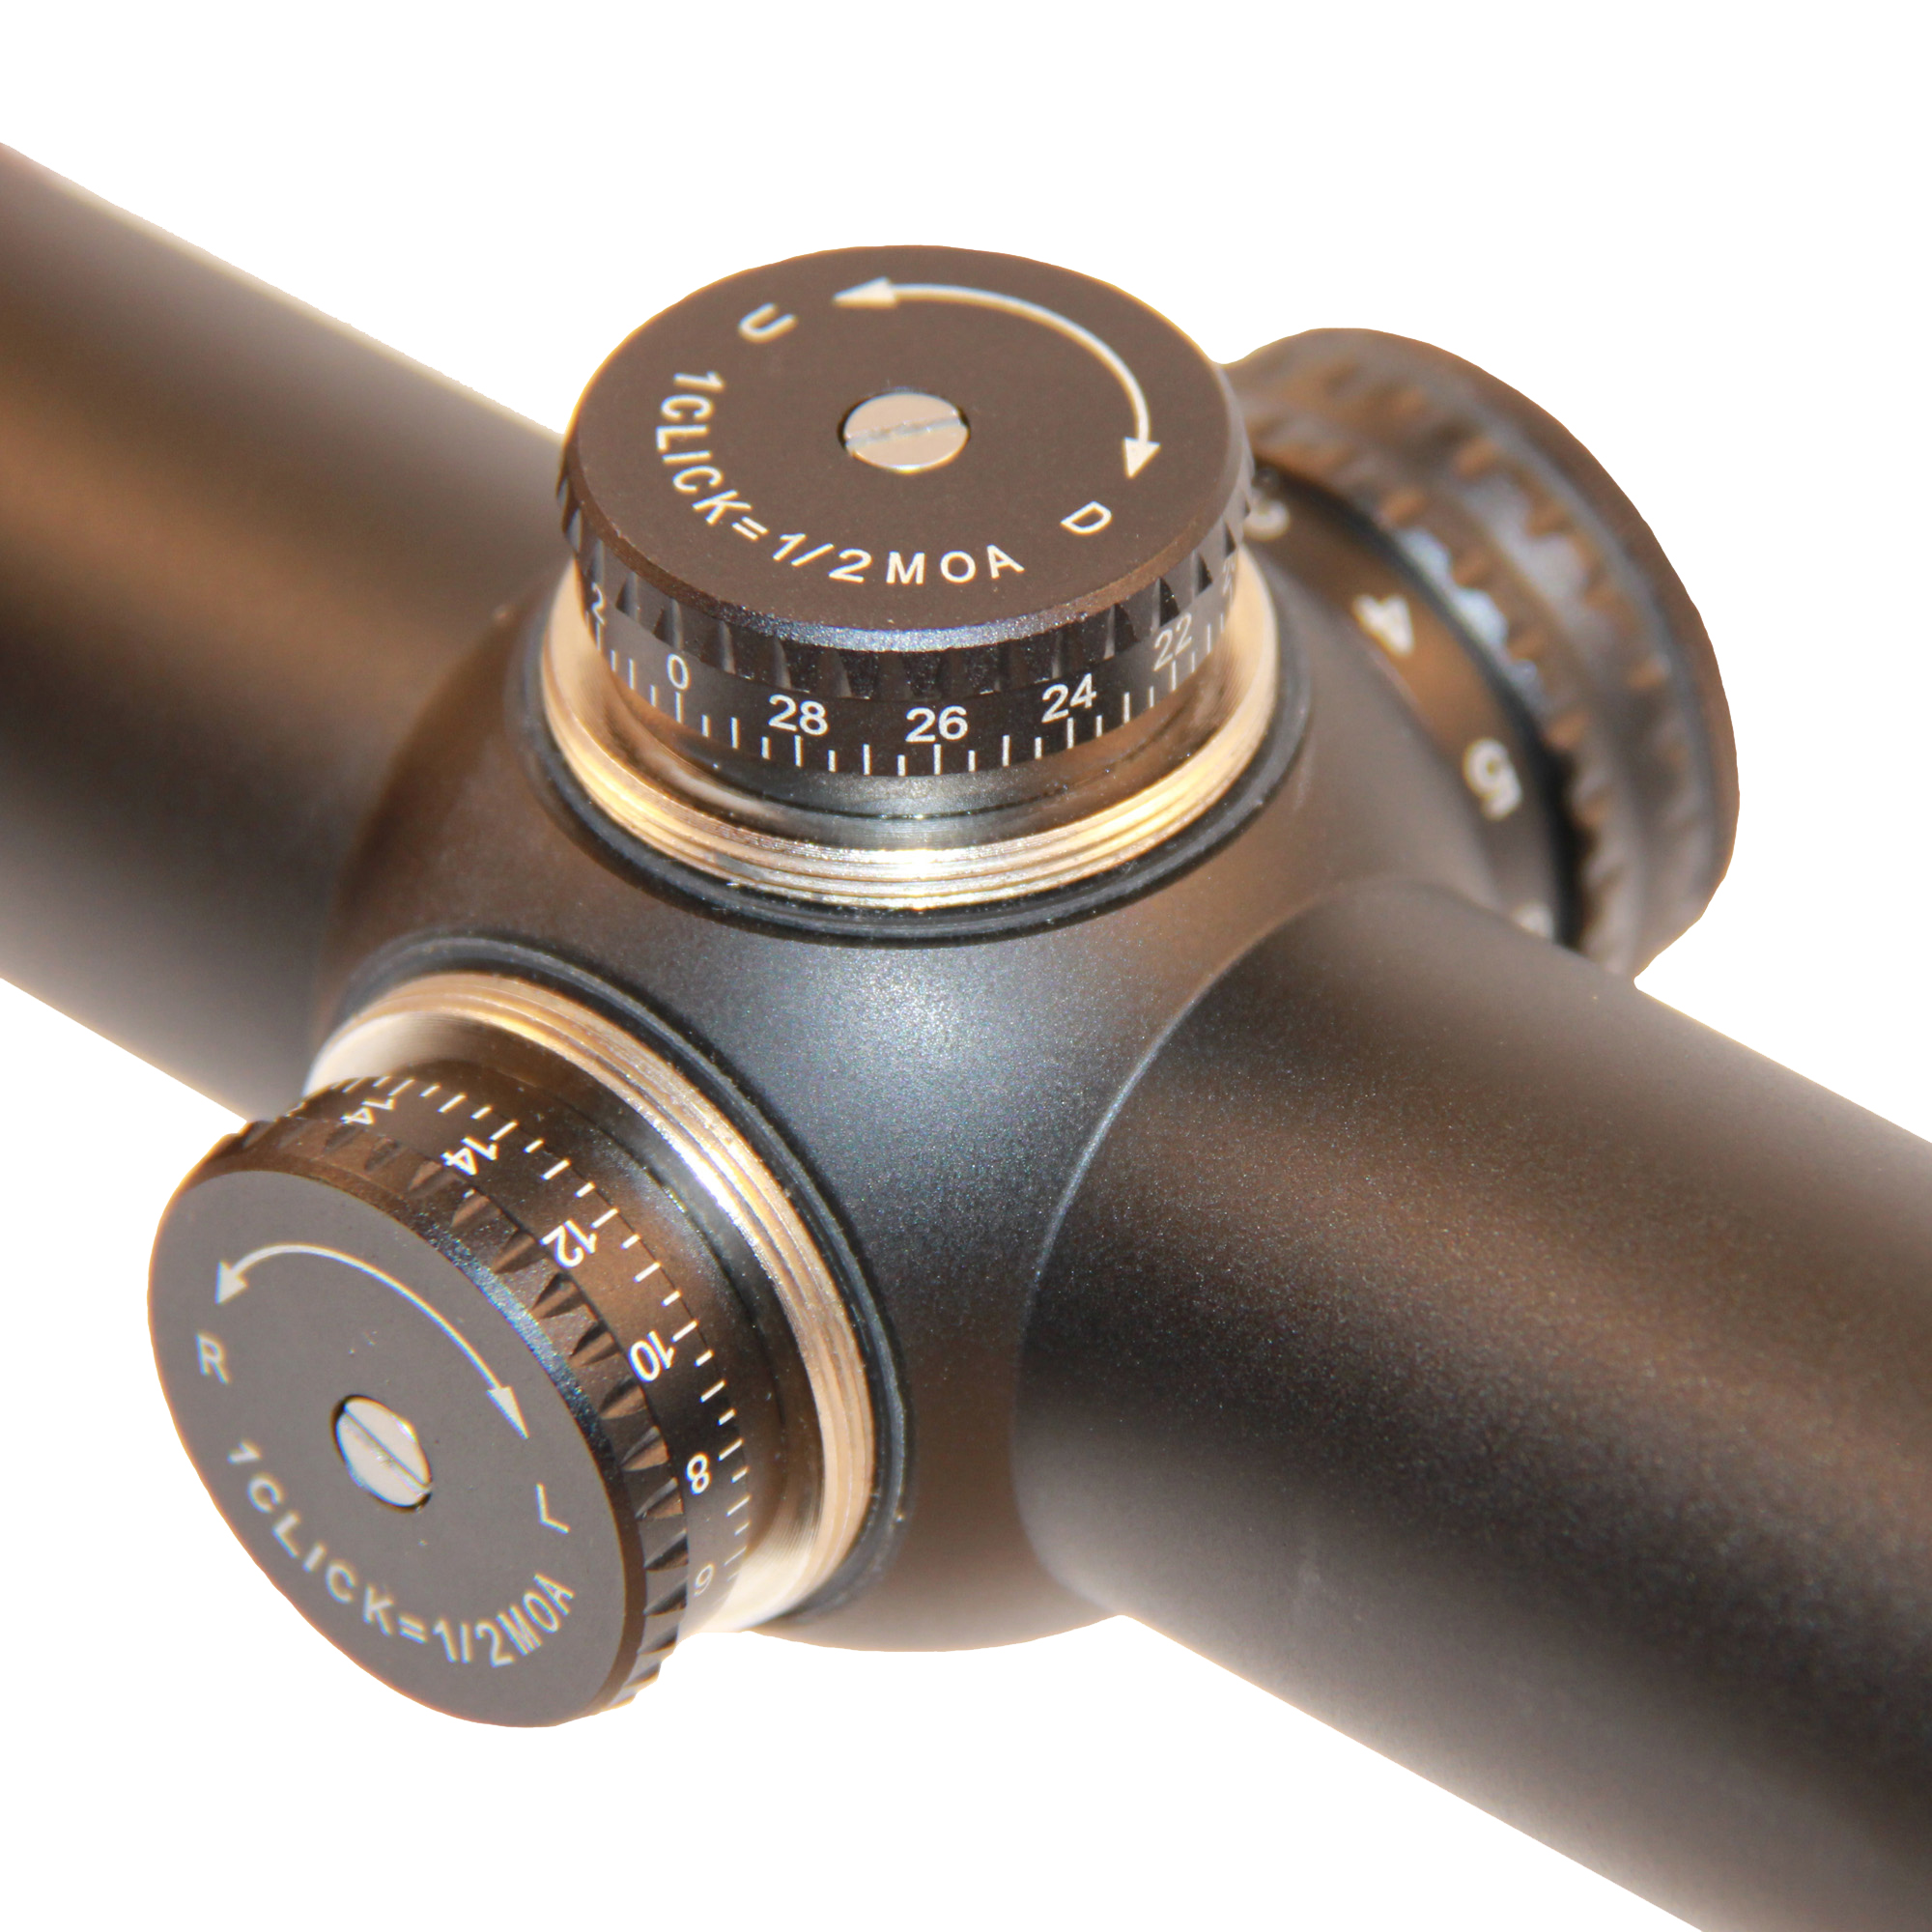 Shepherd Salvo Rife Scope